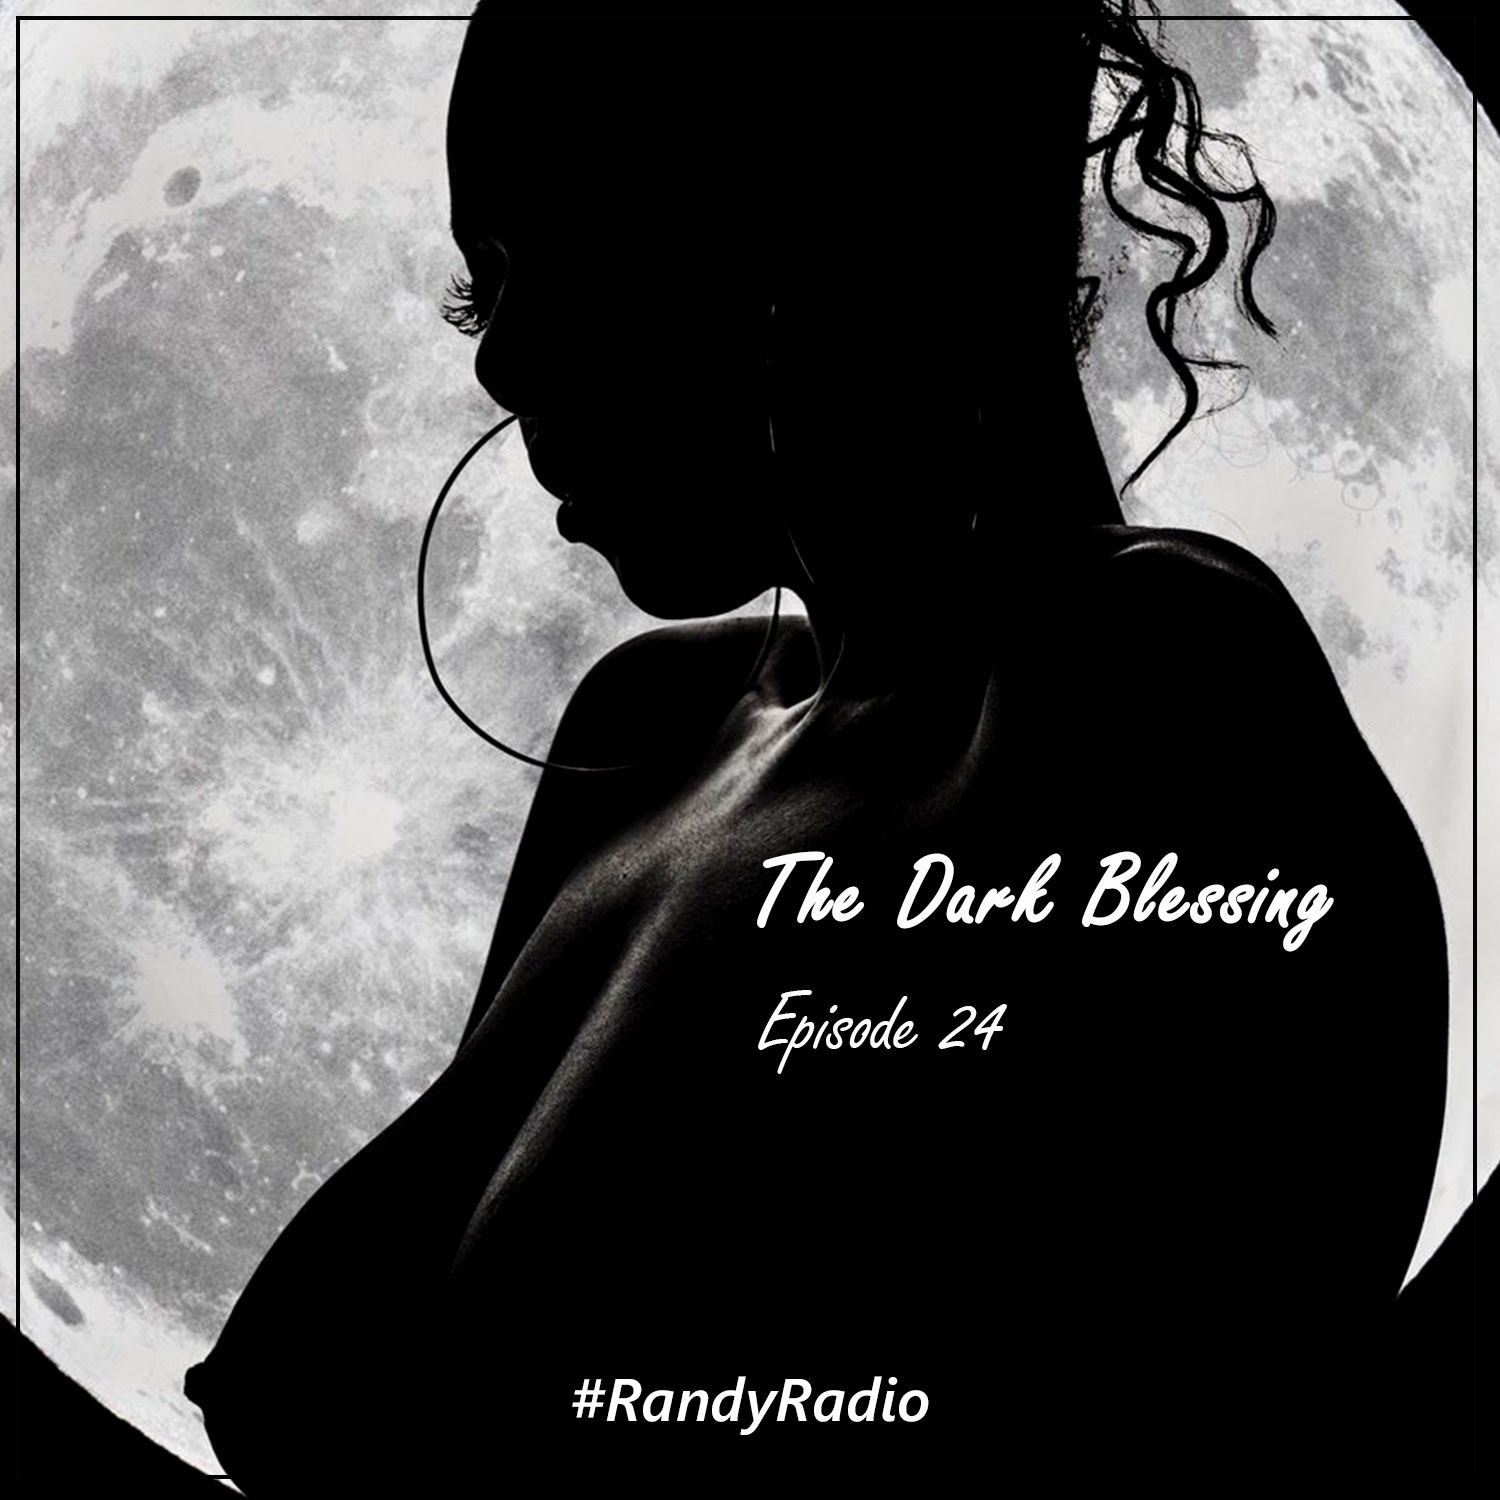 Randy Radio -The Dark Blessing with Robertta Bobbie